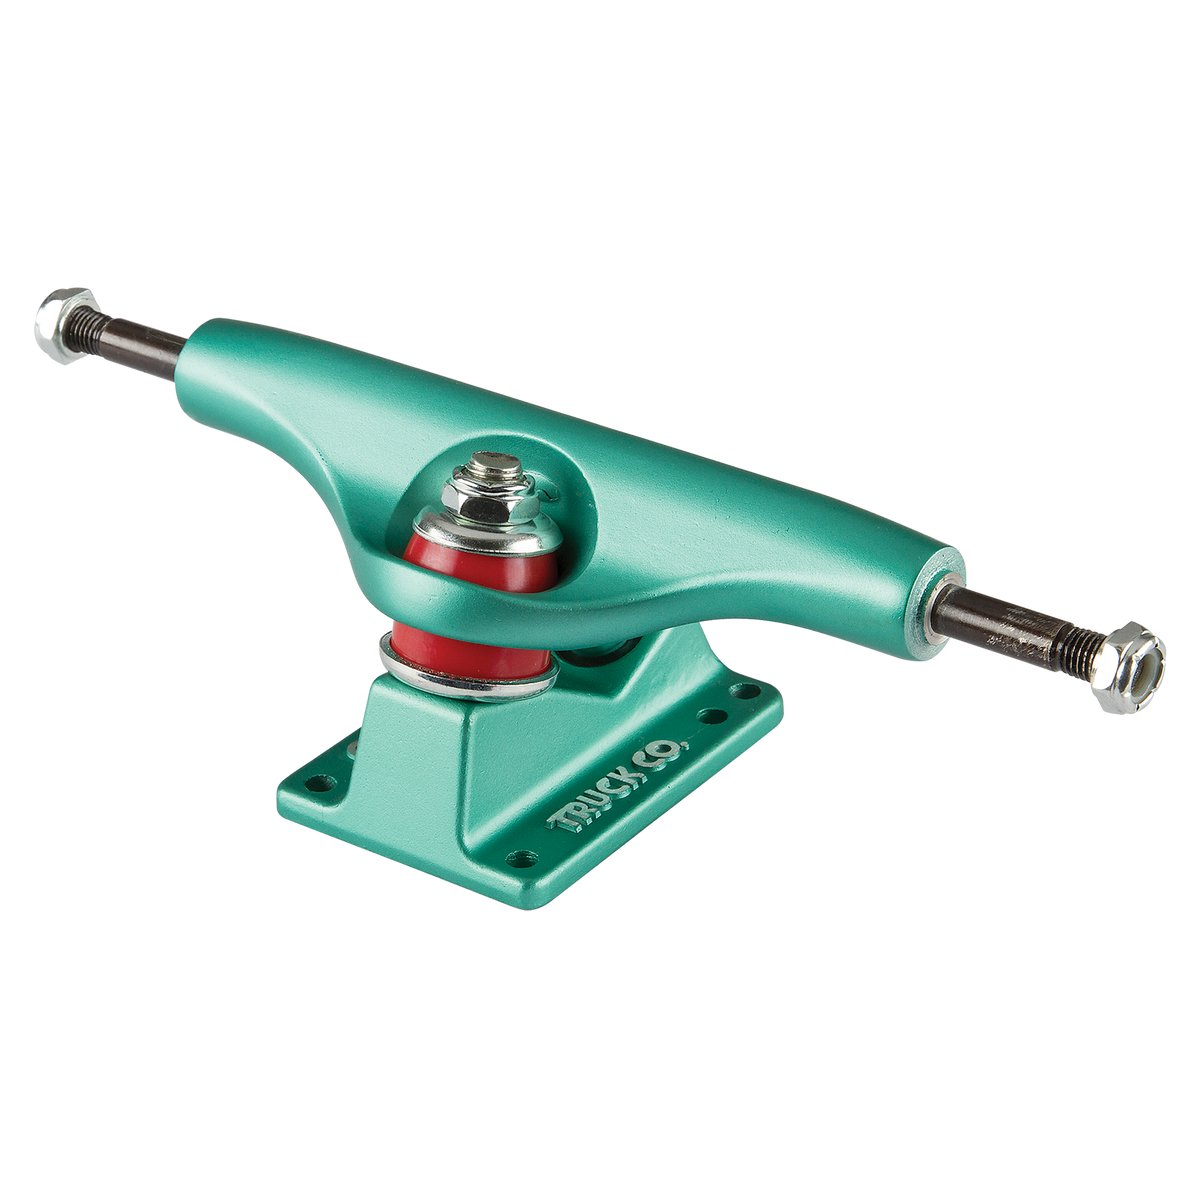 "8.5"" GULLWING SHADOW AQUA SINGLE SKATE TRUCKS"